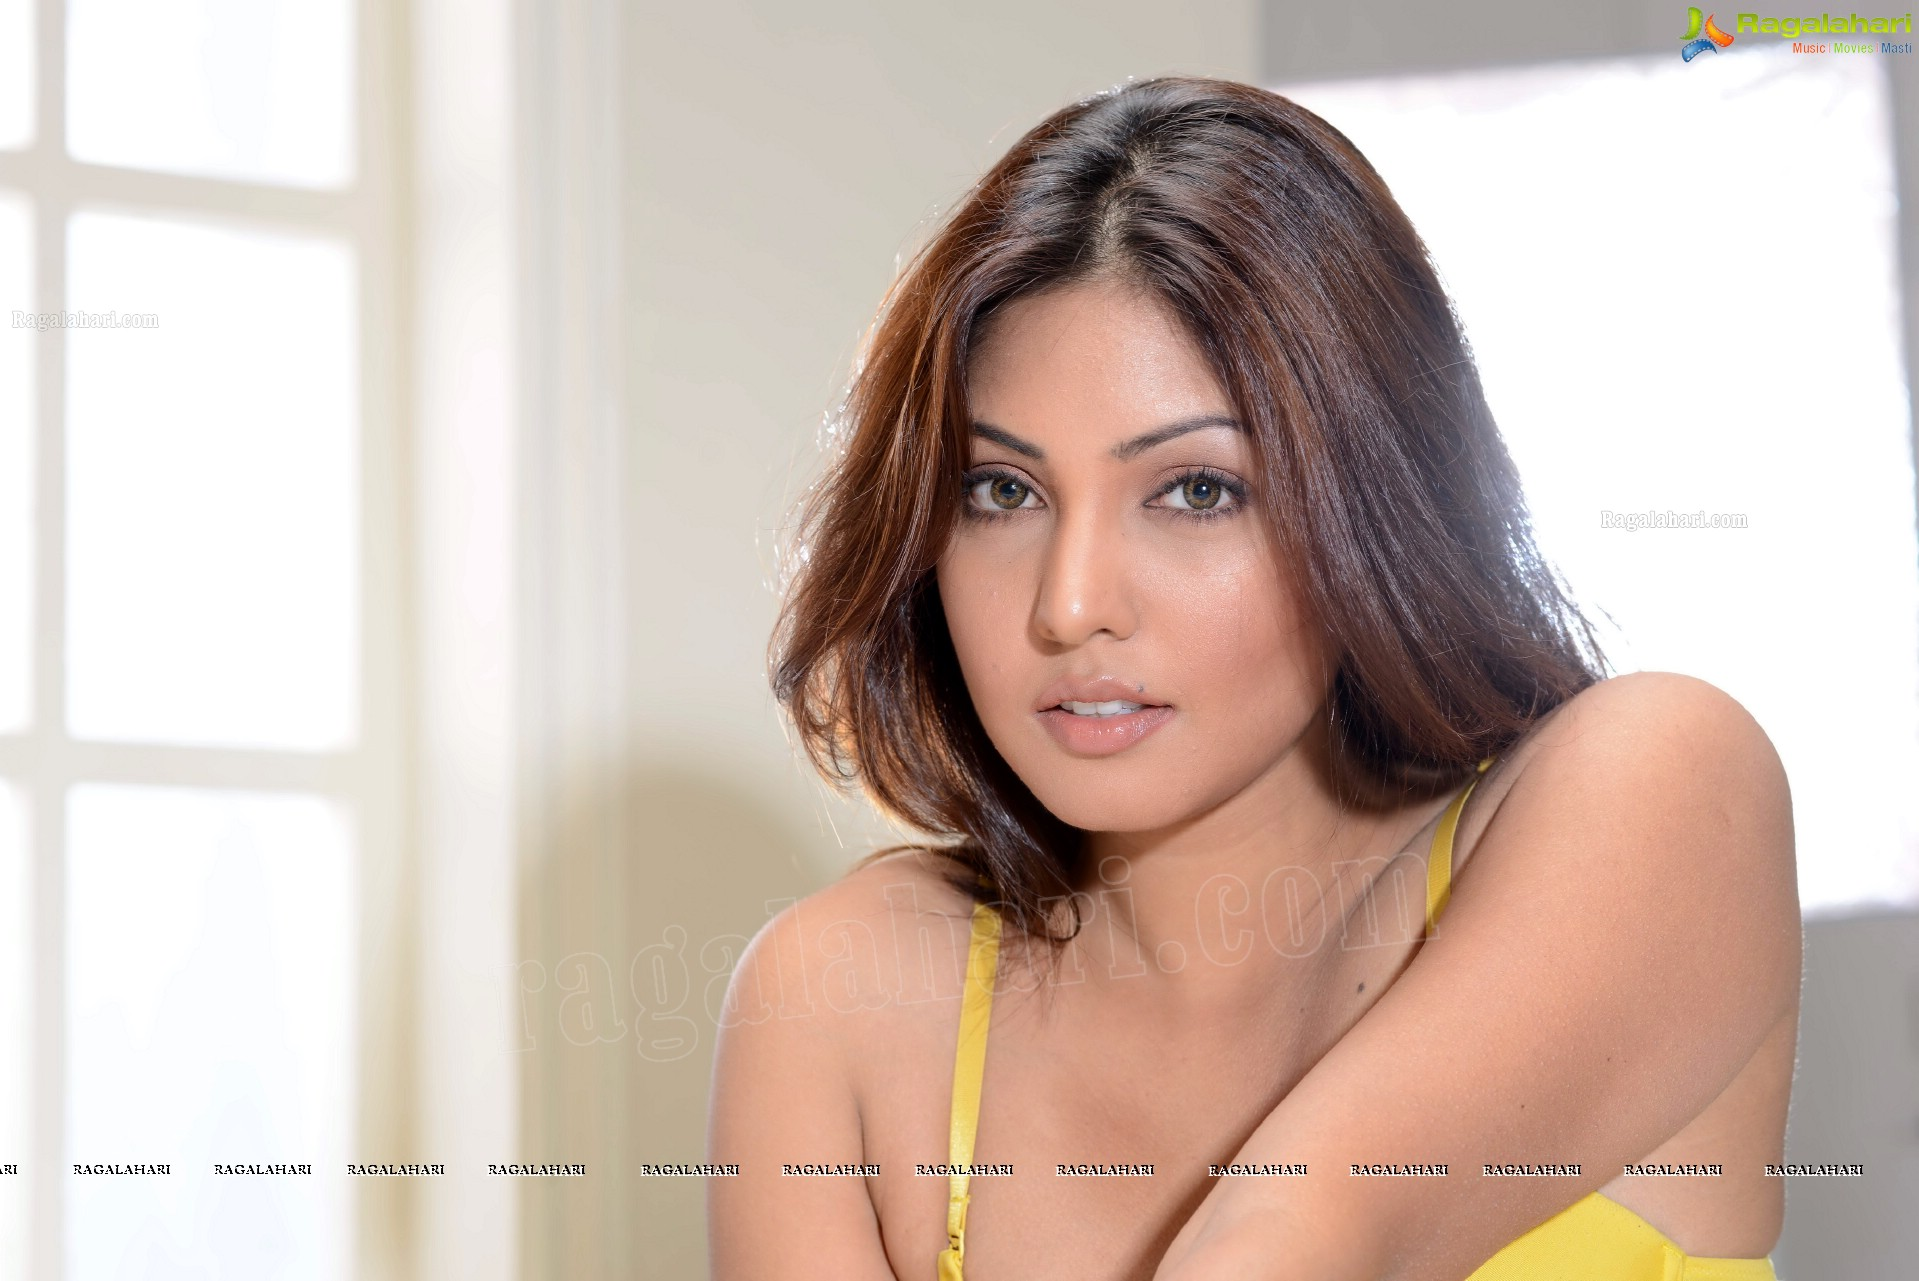 komal jha hd wallpaper - photo #4